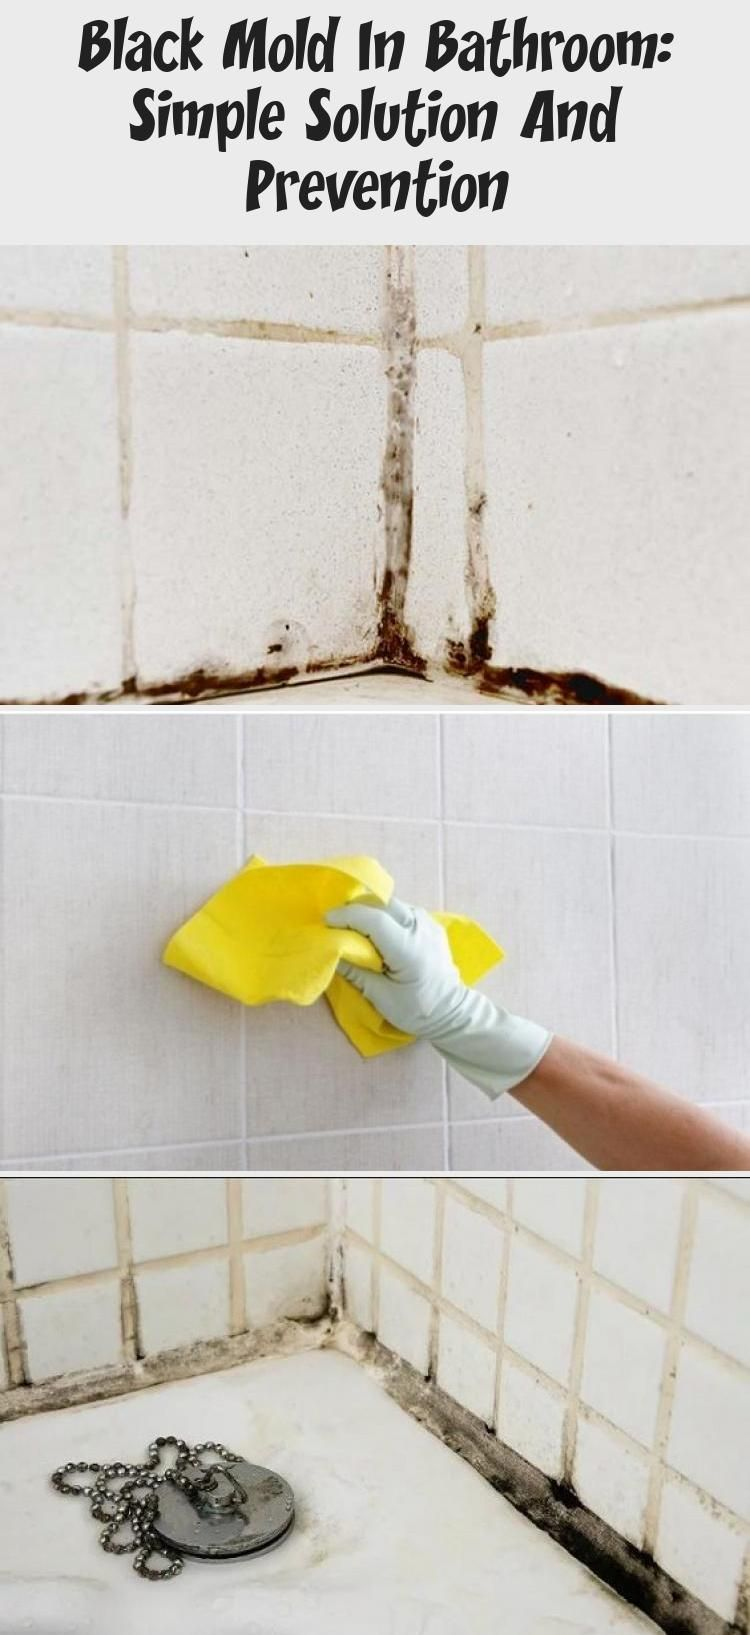 Black Mold In Bathroom Simple Solution And Prevention In 2020 Mold In Bathroom Bathtubs For Small Bathrooms Simple Solutions